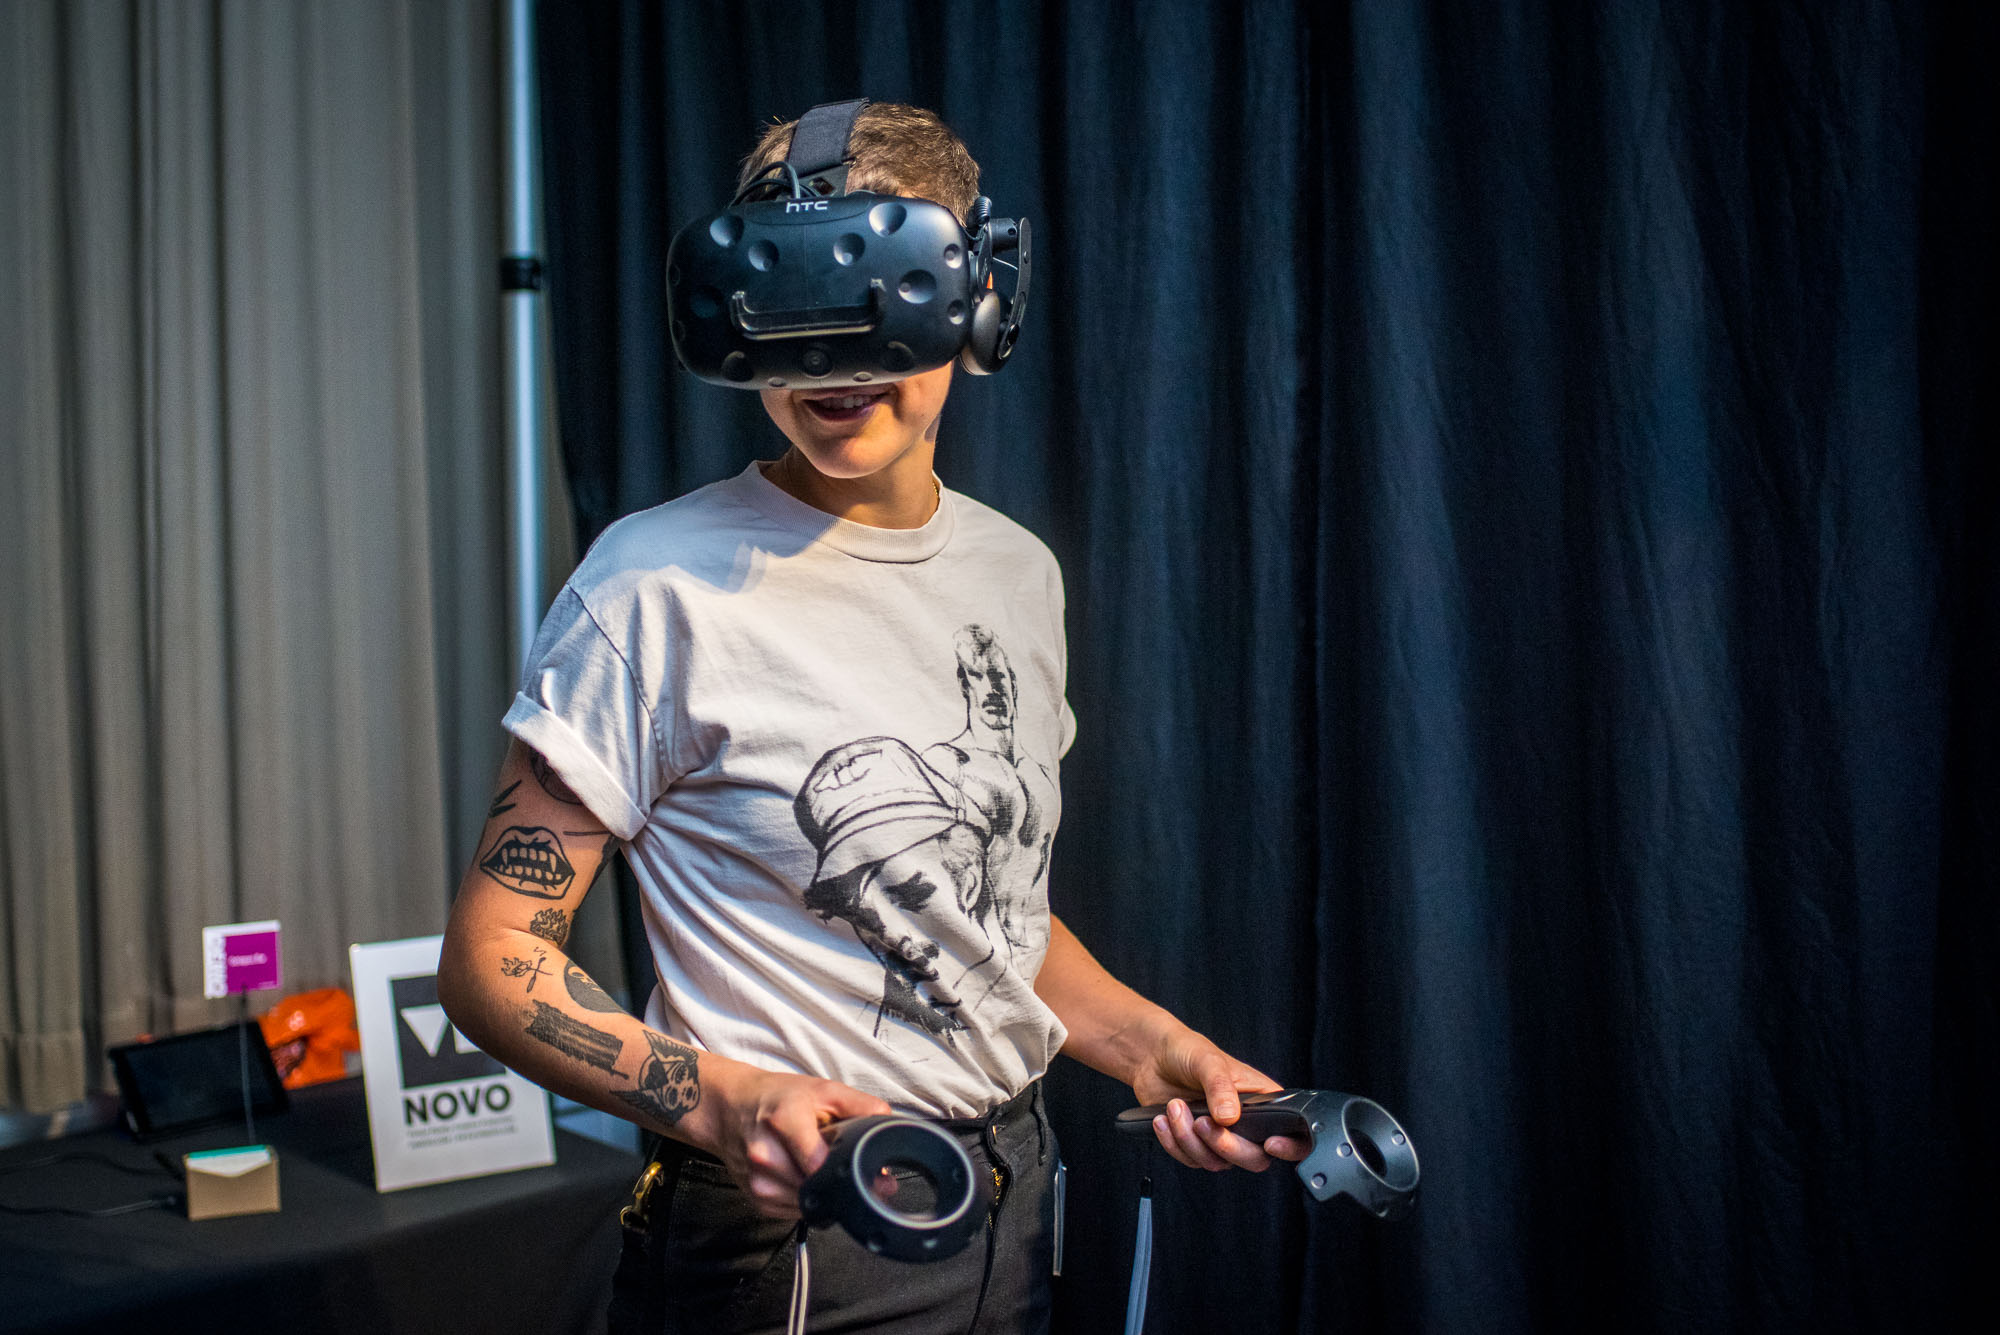 25+ innovative demos - From corporate R&D to new prototypes emerging from NYC Media Lab's university consortium, the Demo Expo will allow guests explore first hand.